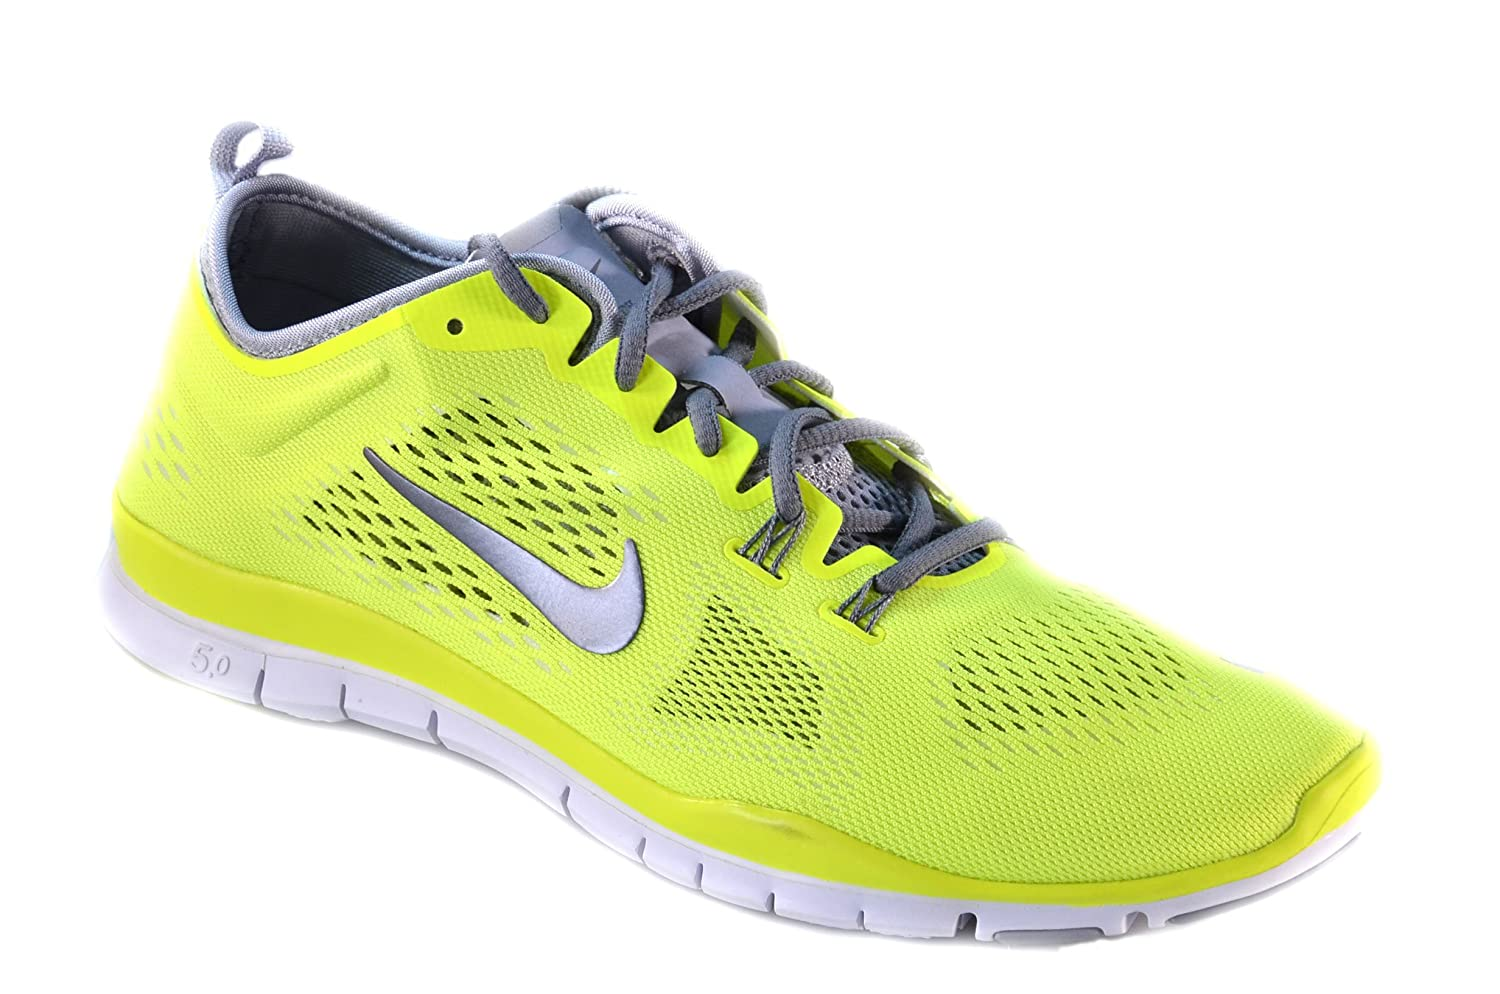 low priced 0256d 2172a Amazon.com | NIKE Womens Free 5.2 TR Fit 4 Training Shoes Size 11 | Running